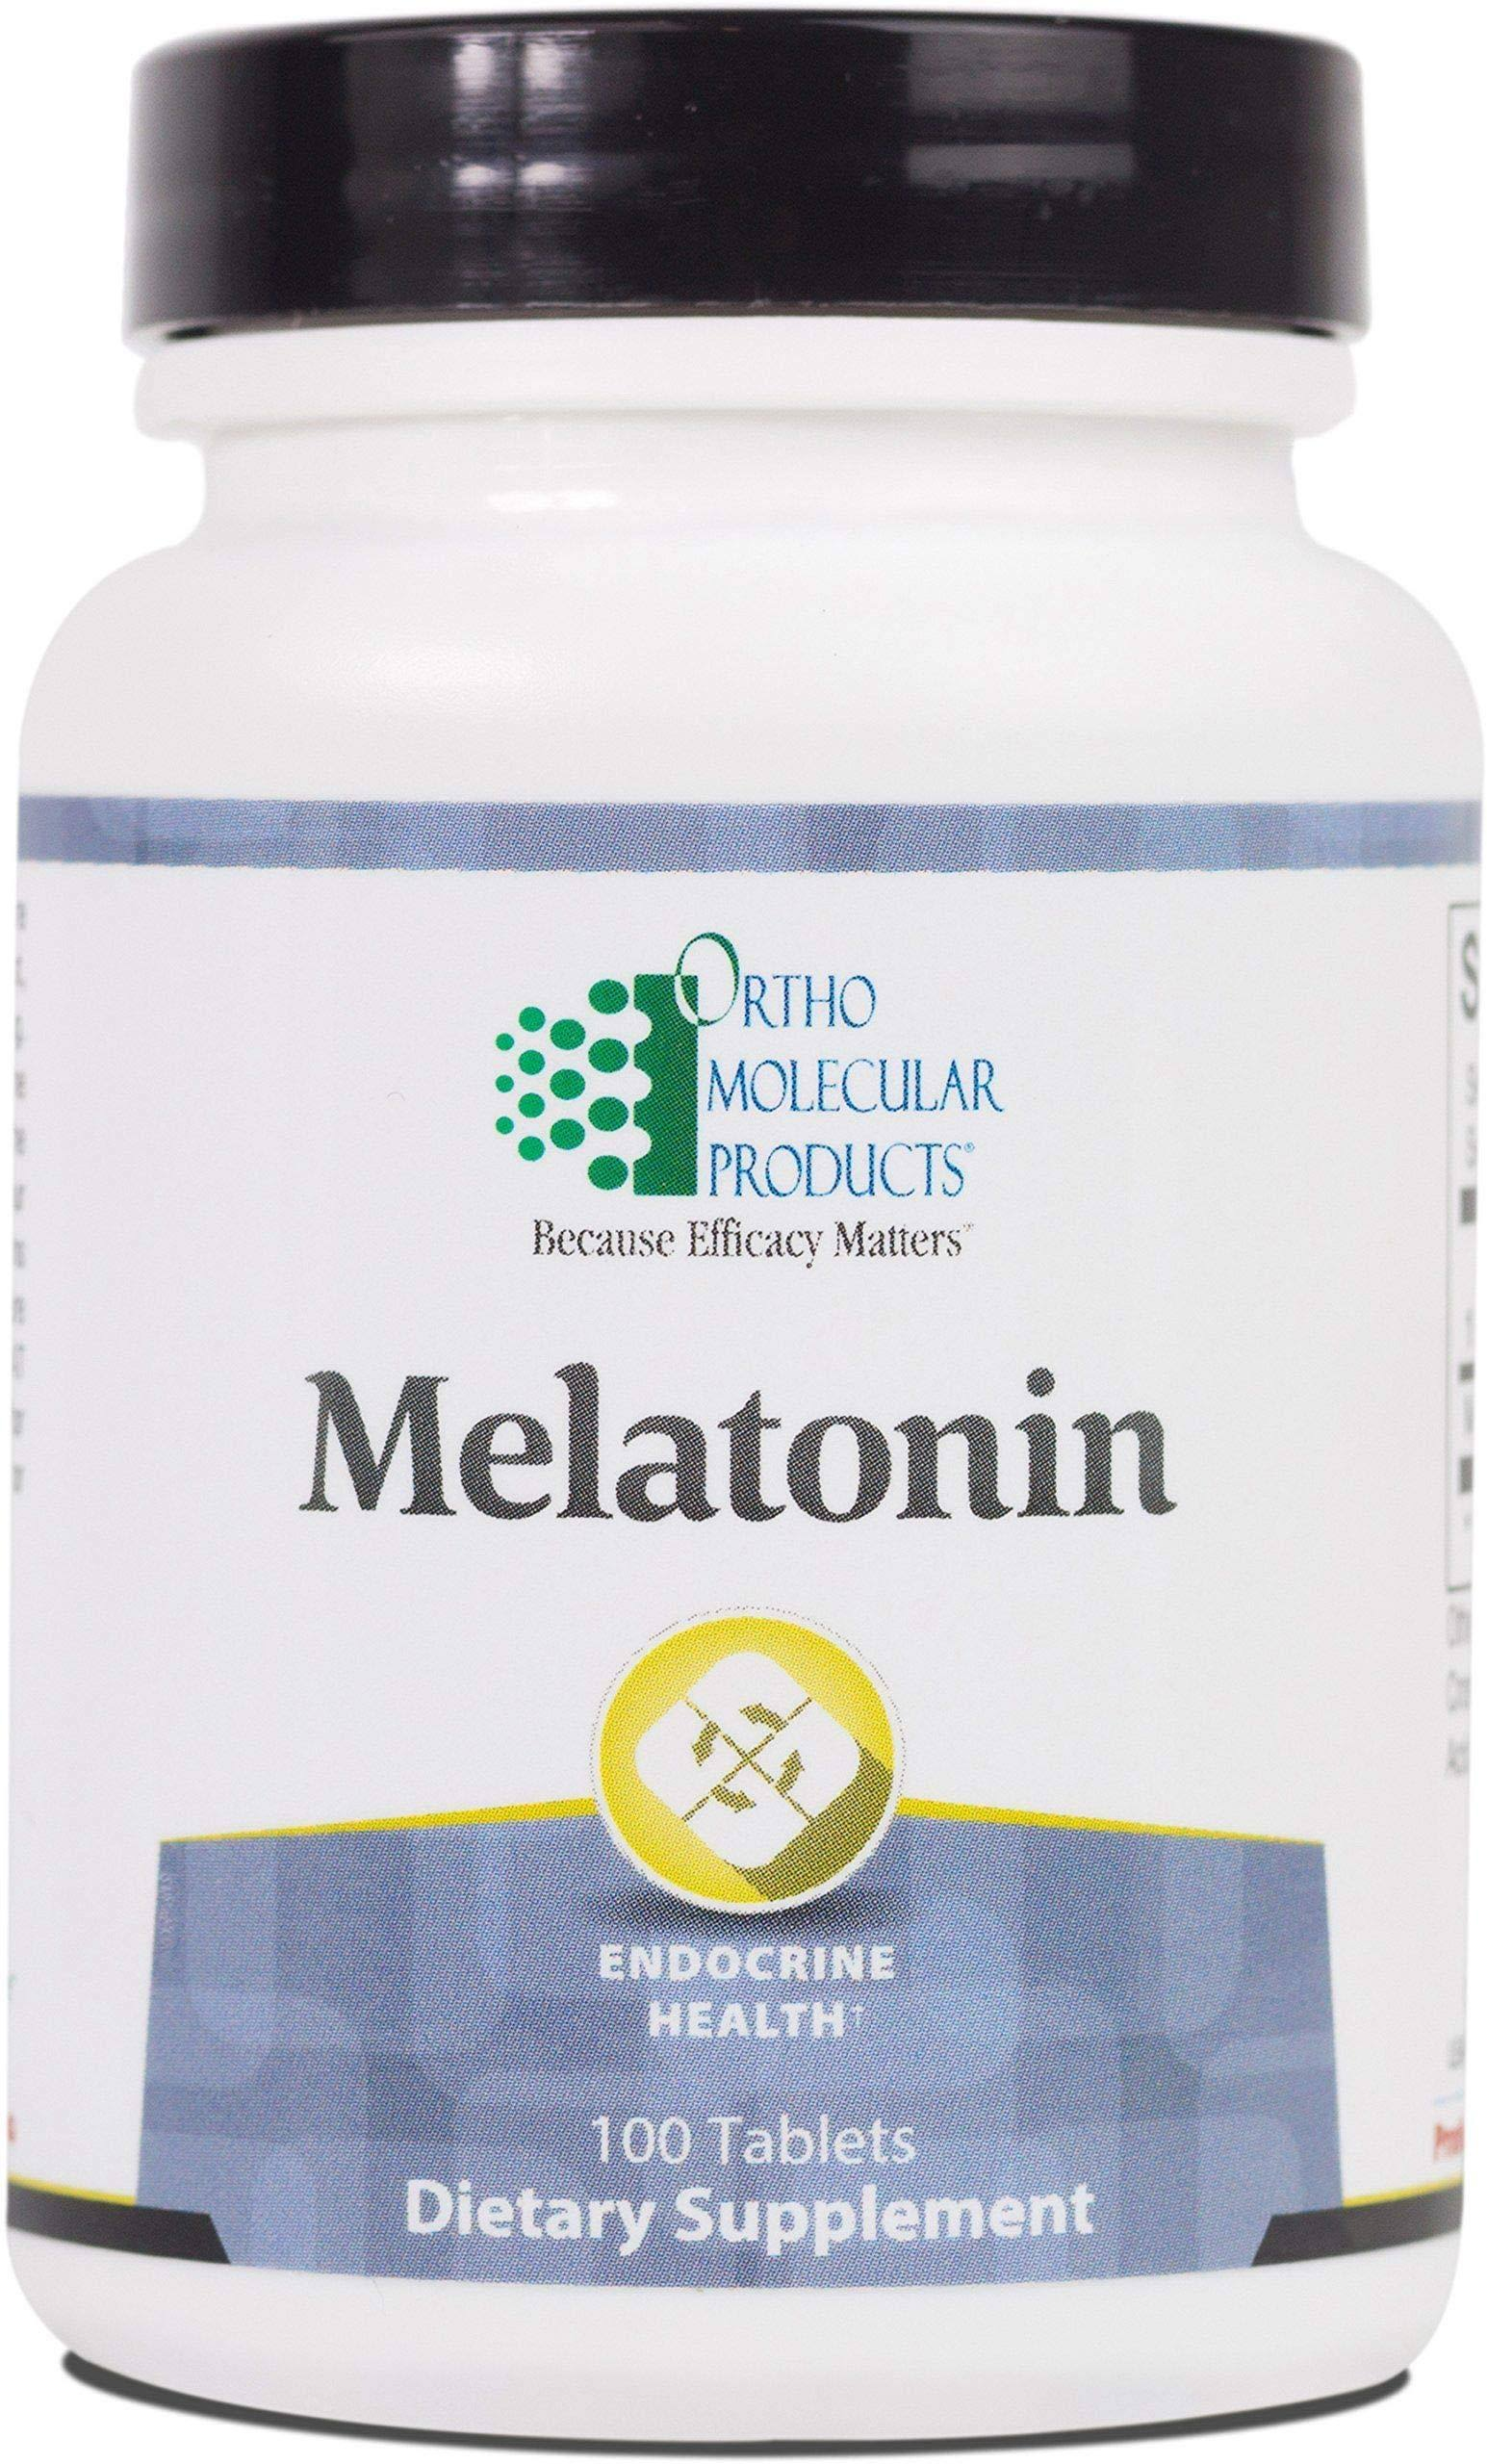 Ortho Molecular - Melatonin - 100 Tablets